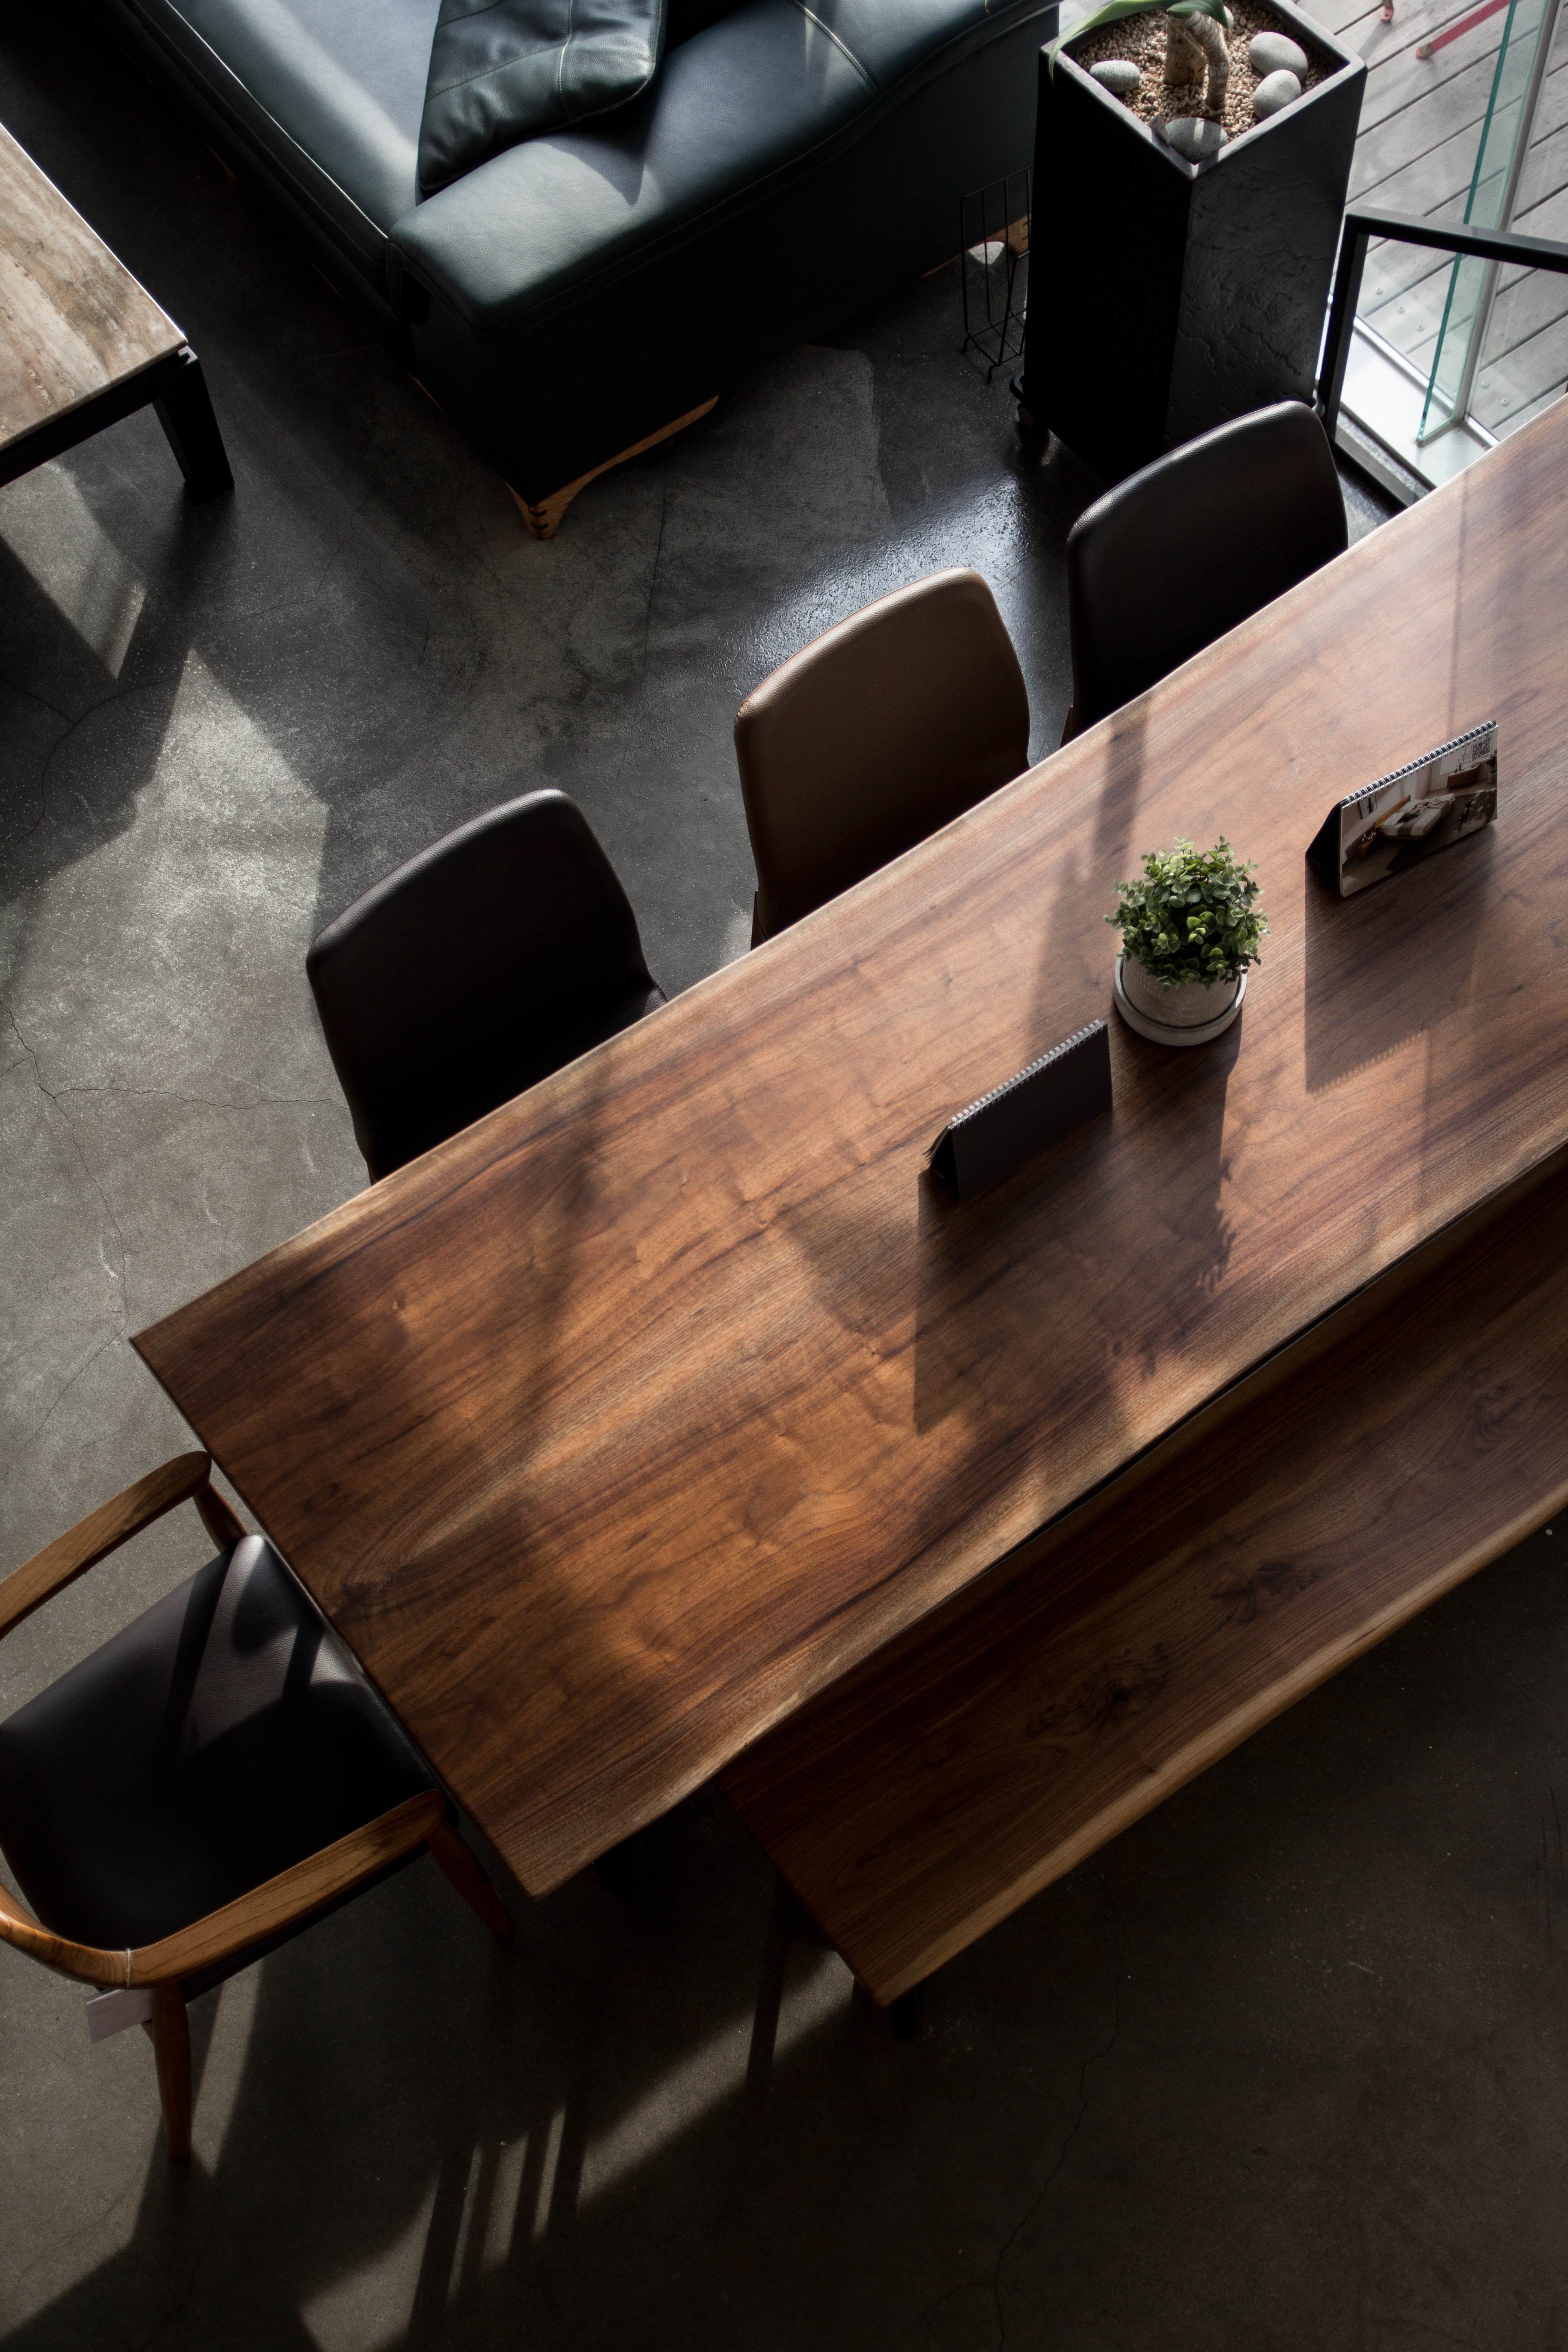 rectangular brown wooden table with white ceramic potted plant inside the room